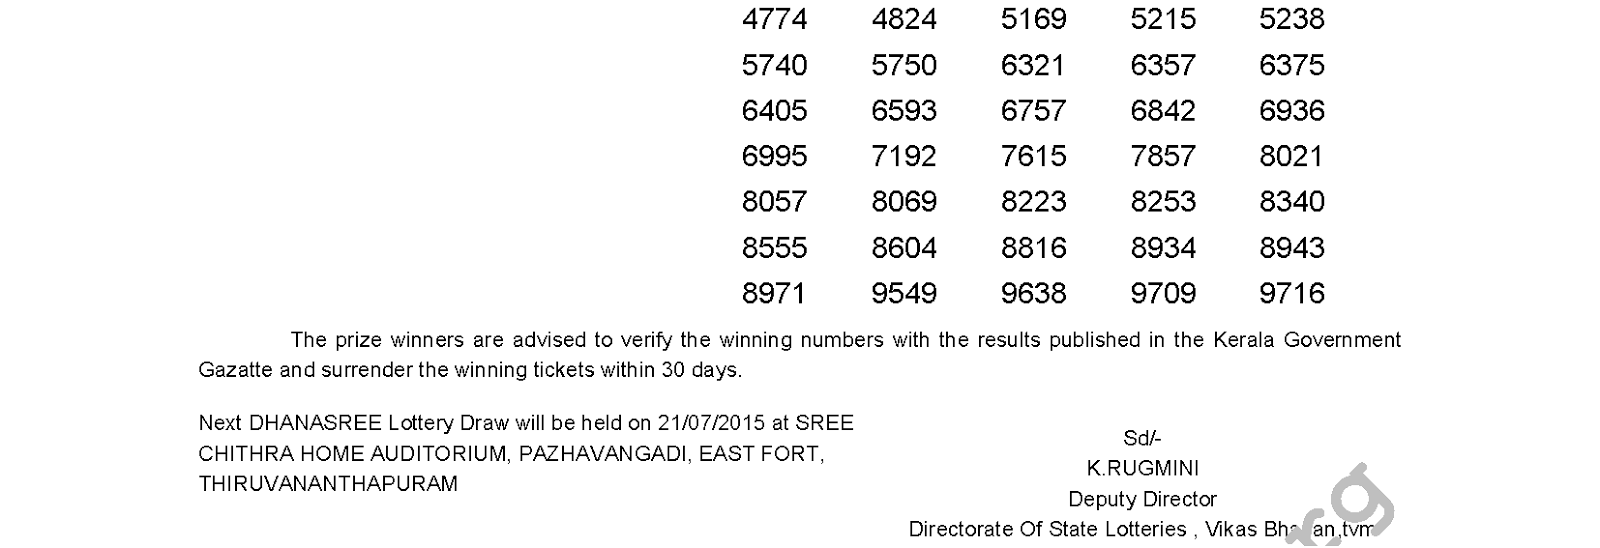 DHANASREE Lottery DS 194 Result 14-7-2015